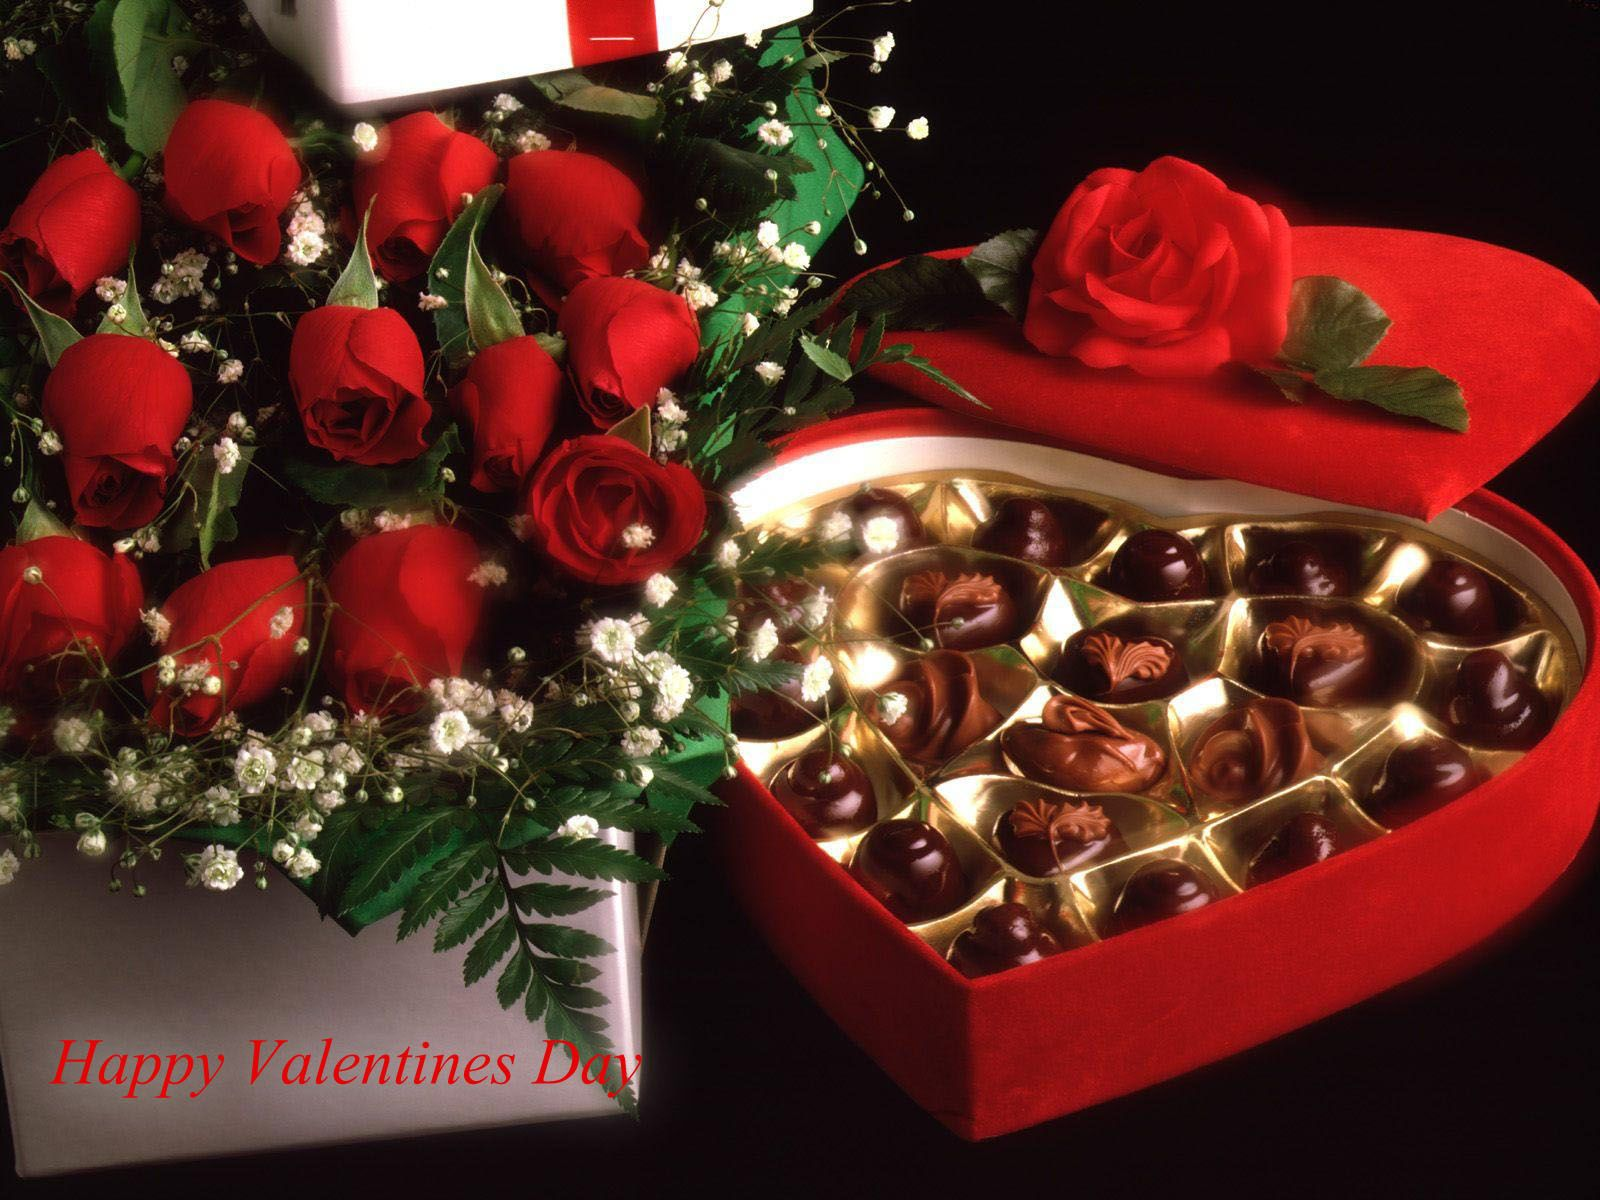 Traditional gifts include chocolates, candy, flowers, particularly red roses